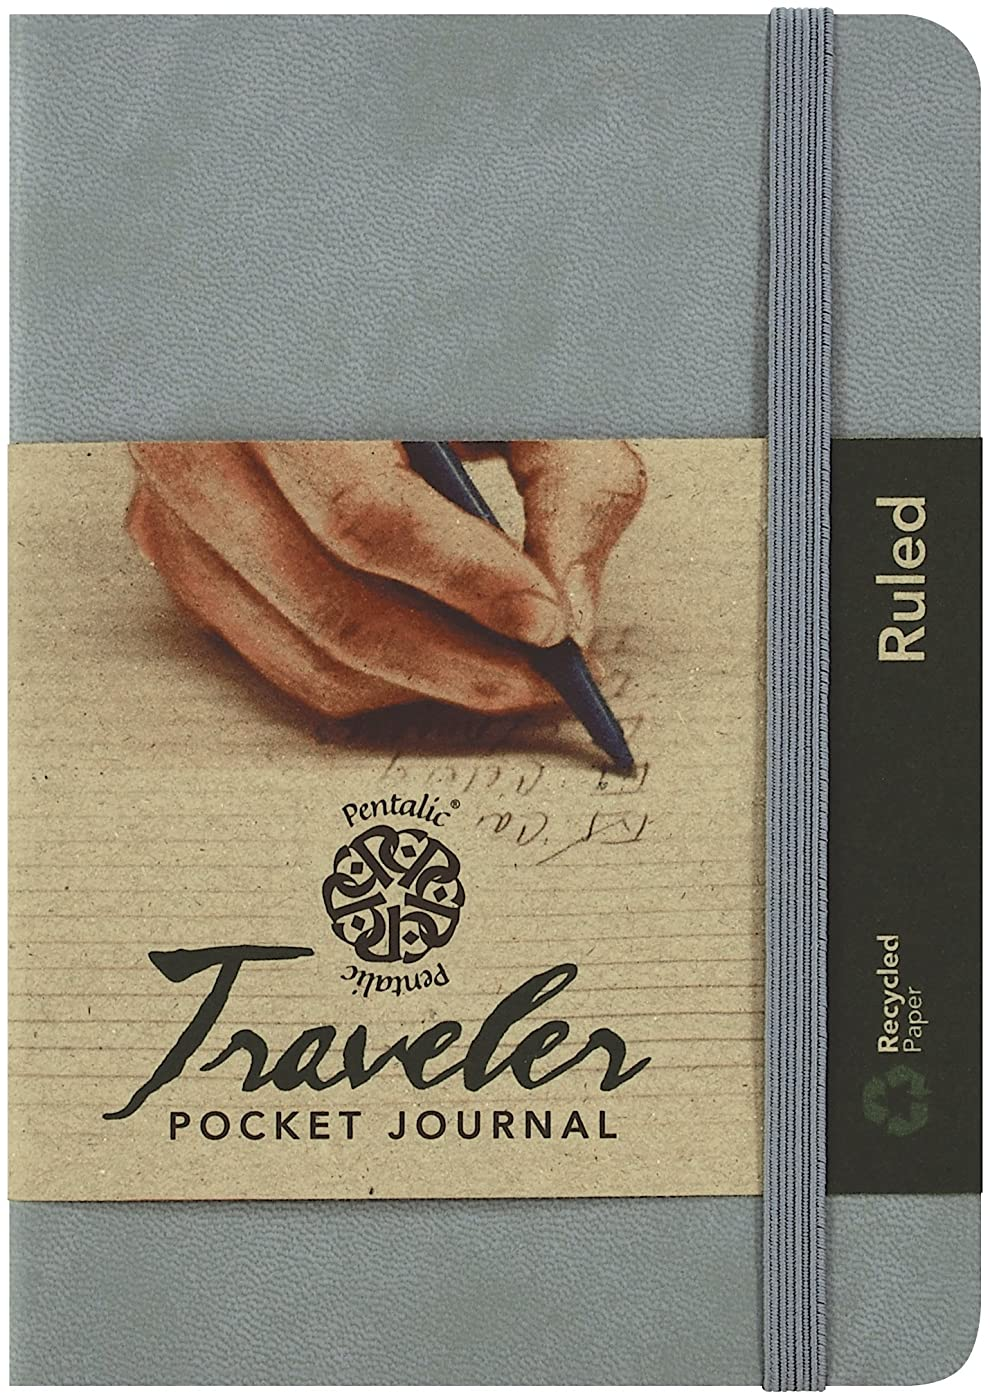 Pentalic Ruled Traveler Pocket Journal, 6 by 4-Inch, Gray by C2F, Inc.